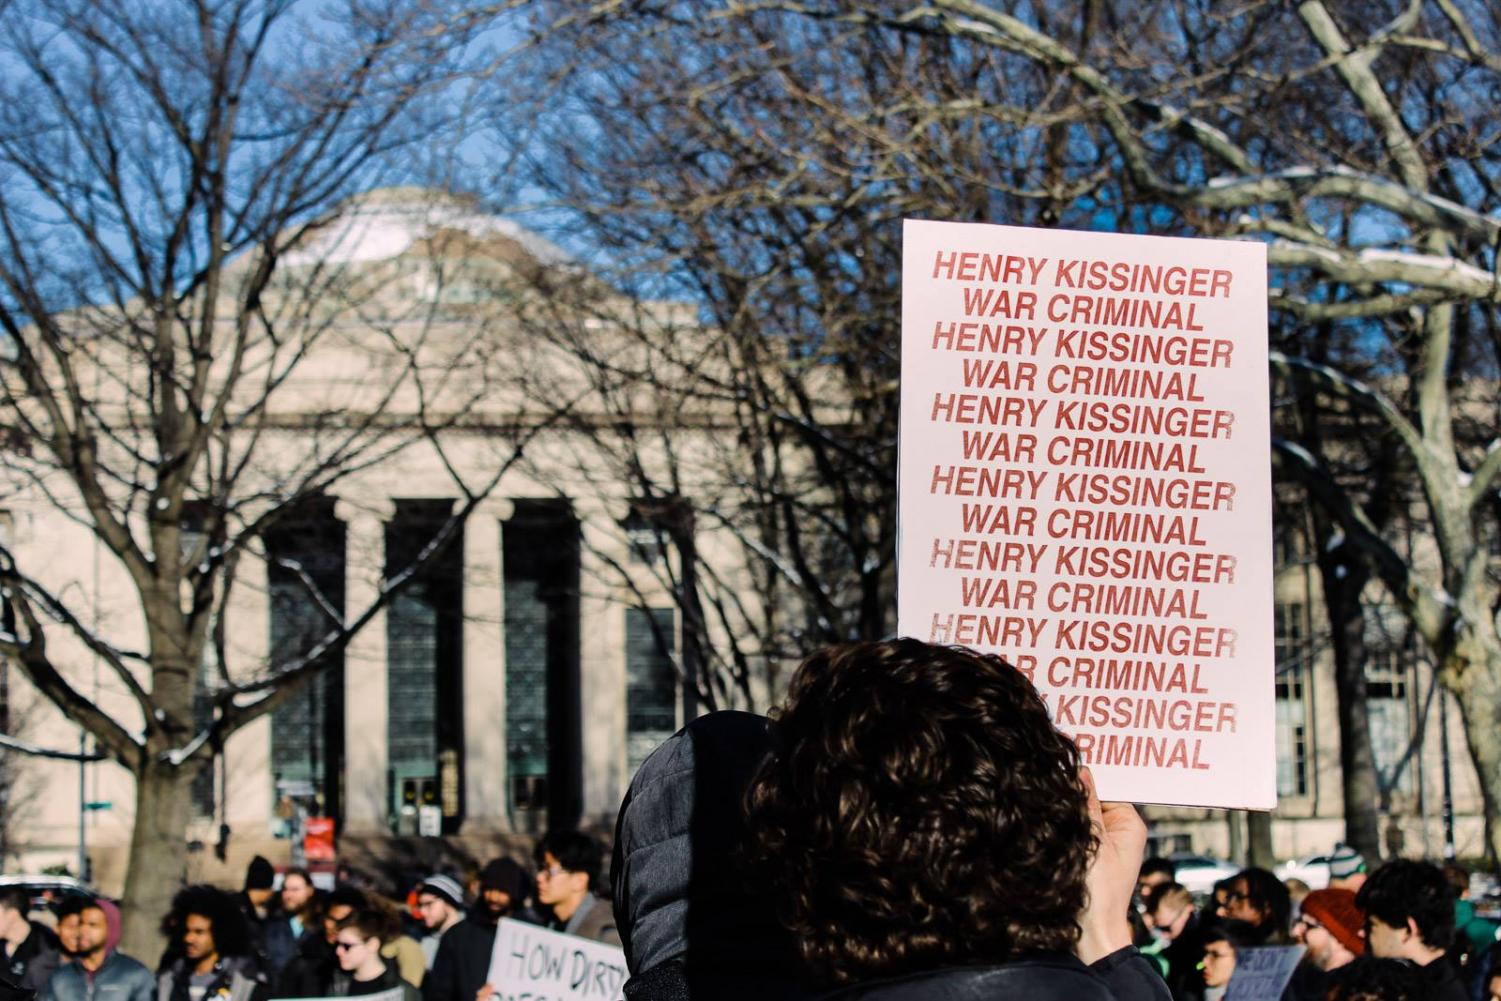 A protester holds up a sign opposing former U.S. Secretary of State Henry Kissinger at an event celebrating MIT's new Stephen A. Schwarzman College of Computing.